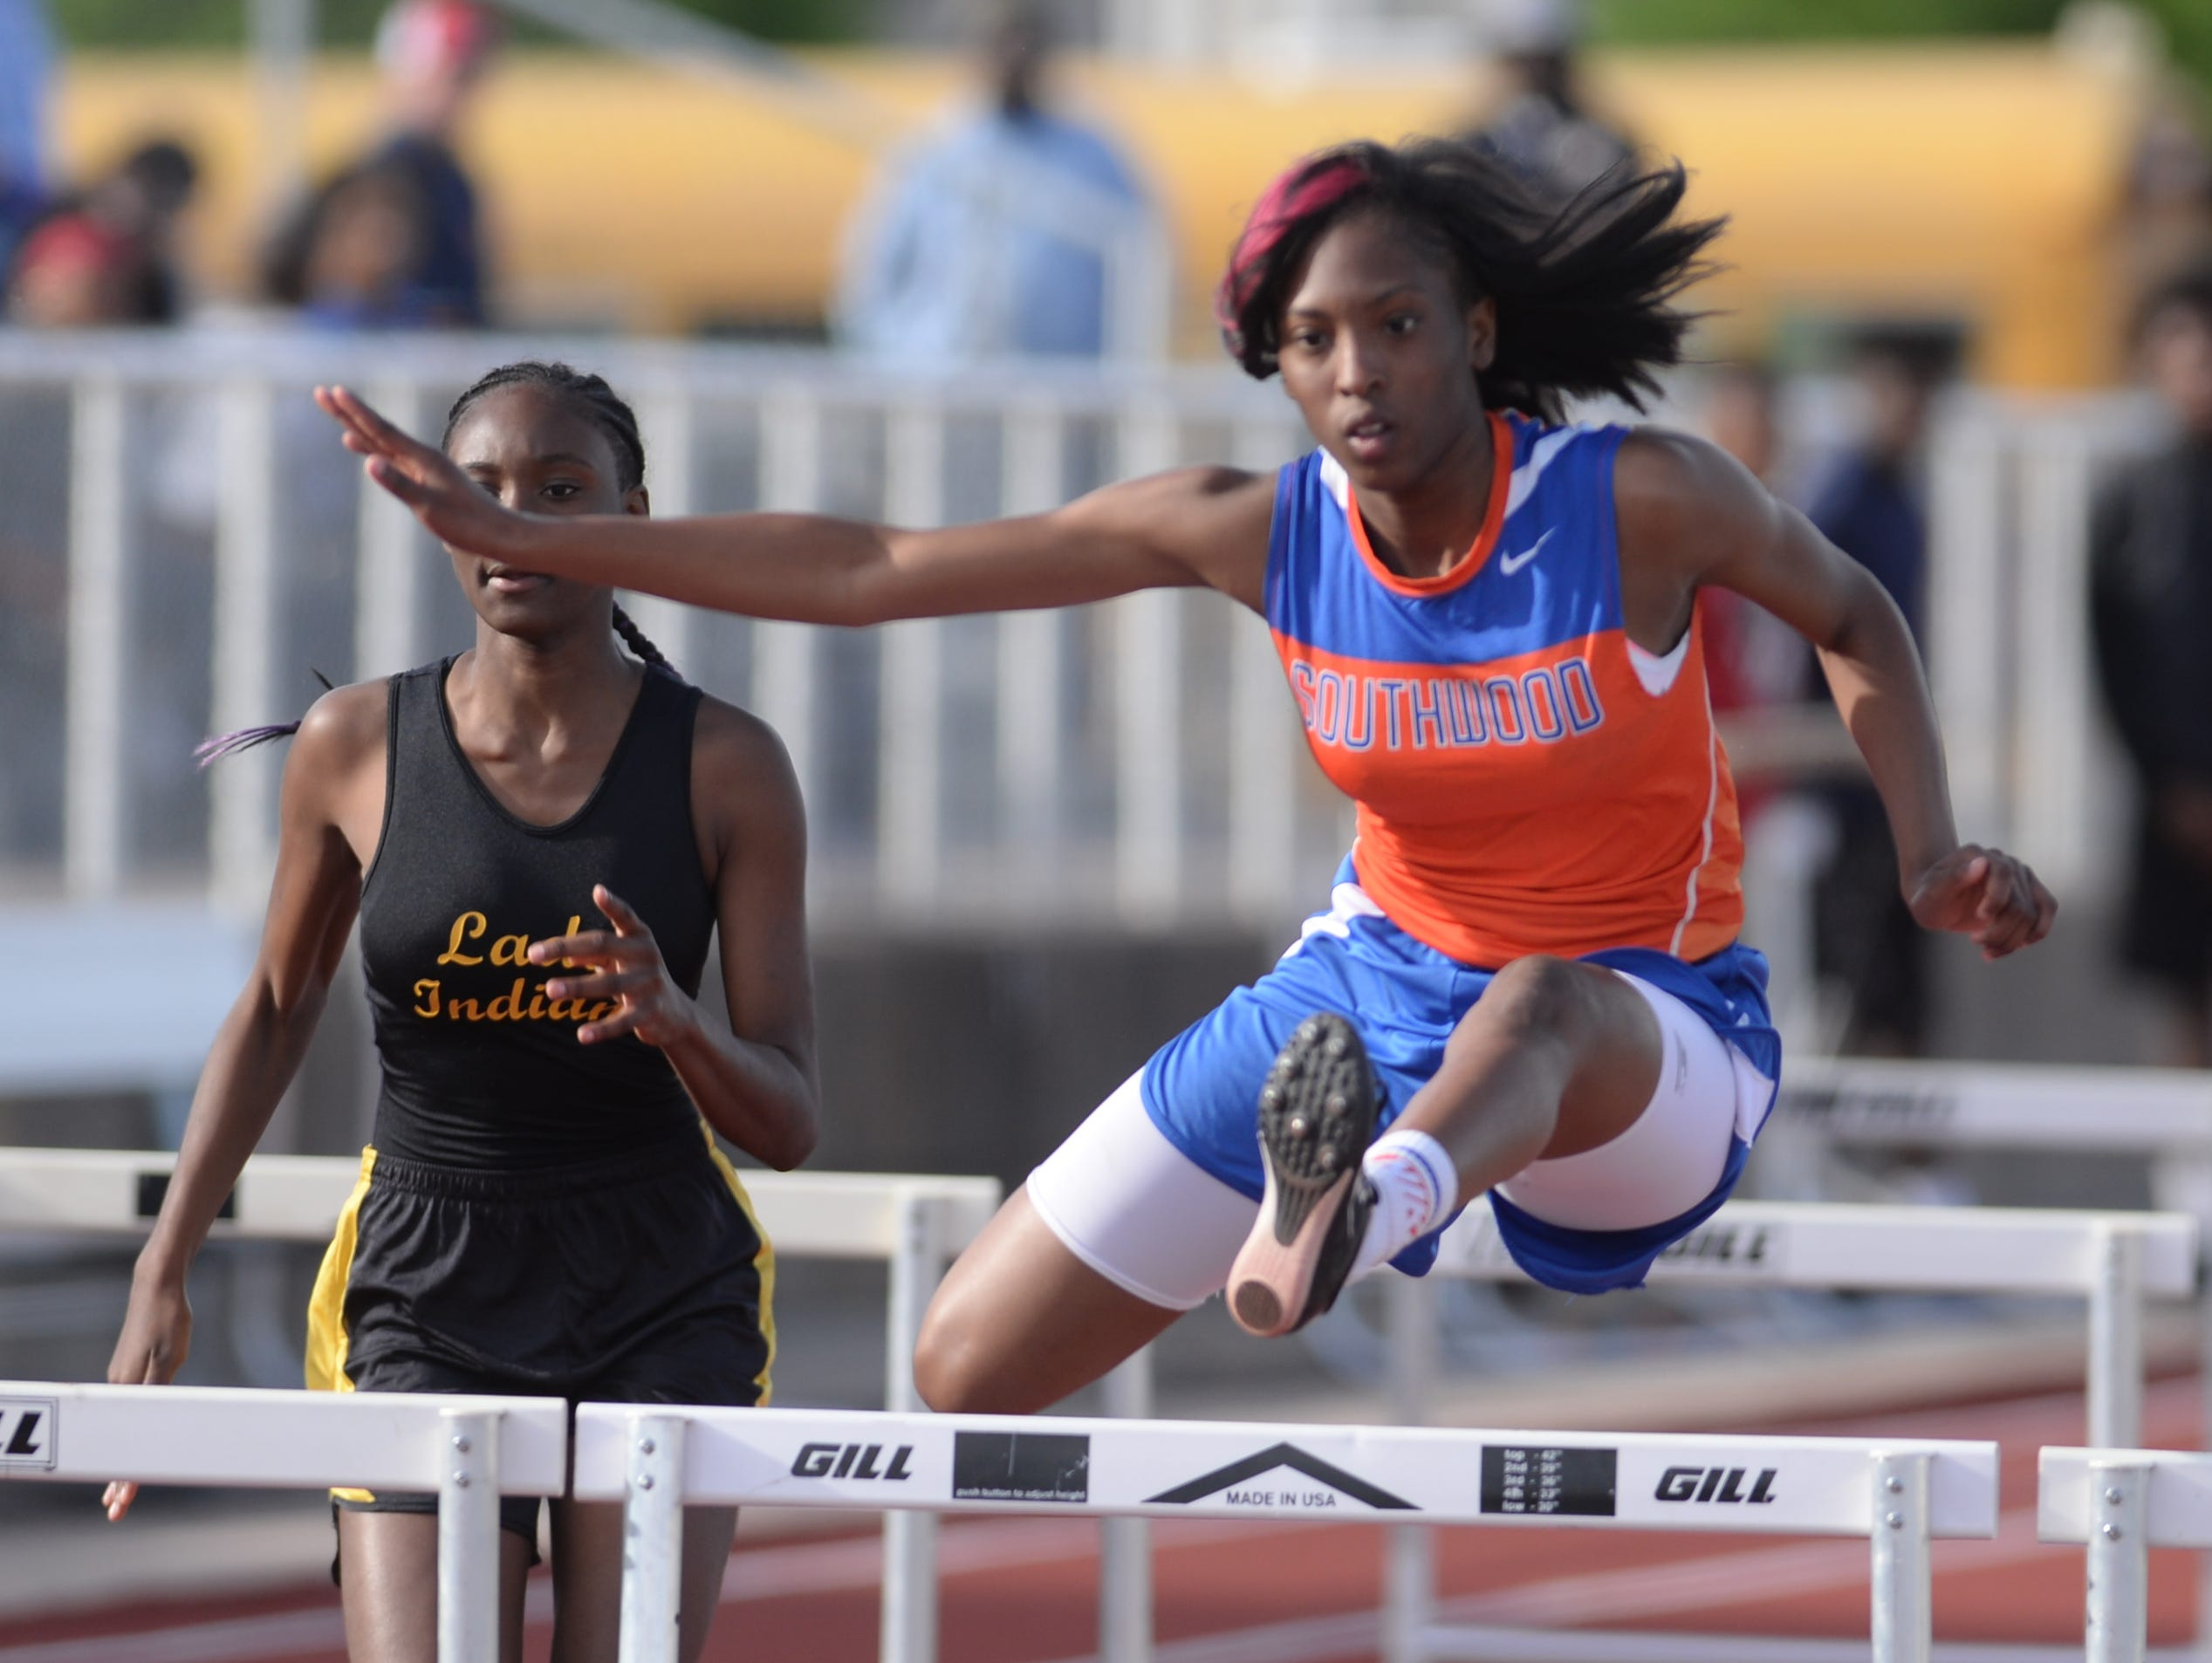 Southwood's Vanesssa Aviles clears her hurdle in the 100M hurdels event at the Shreveport relays.